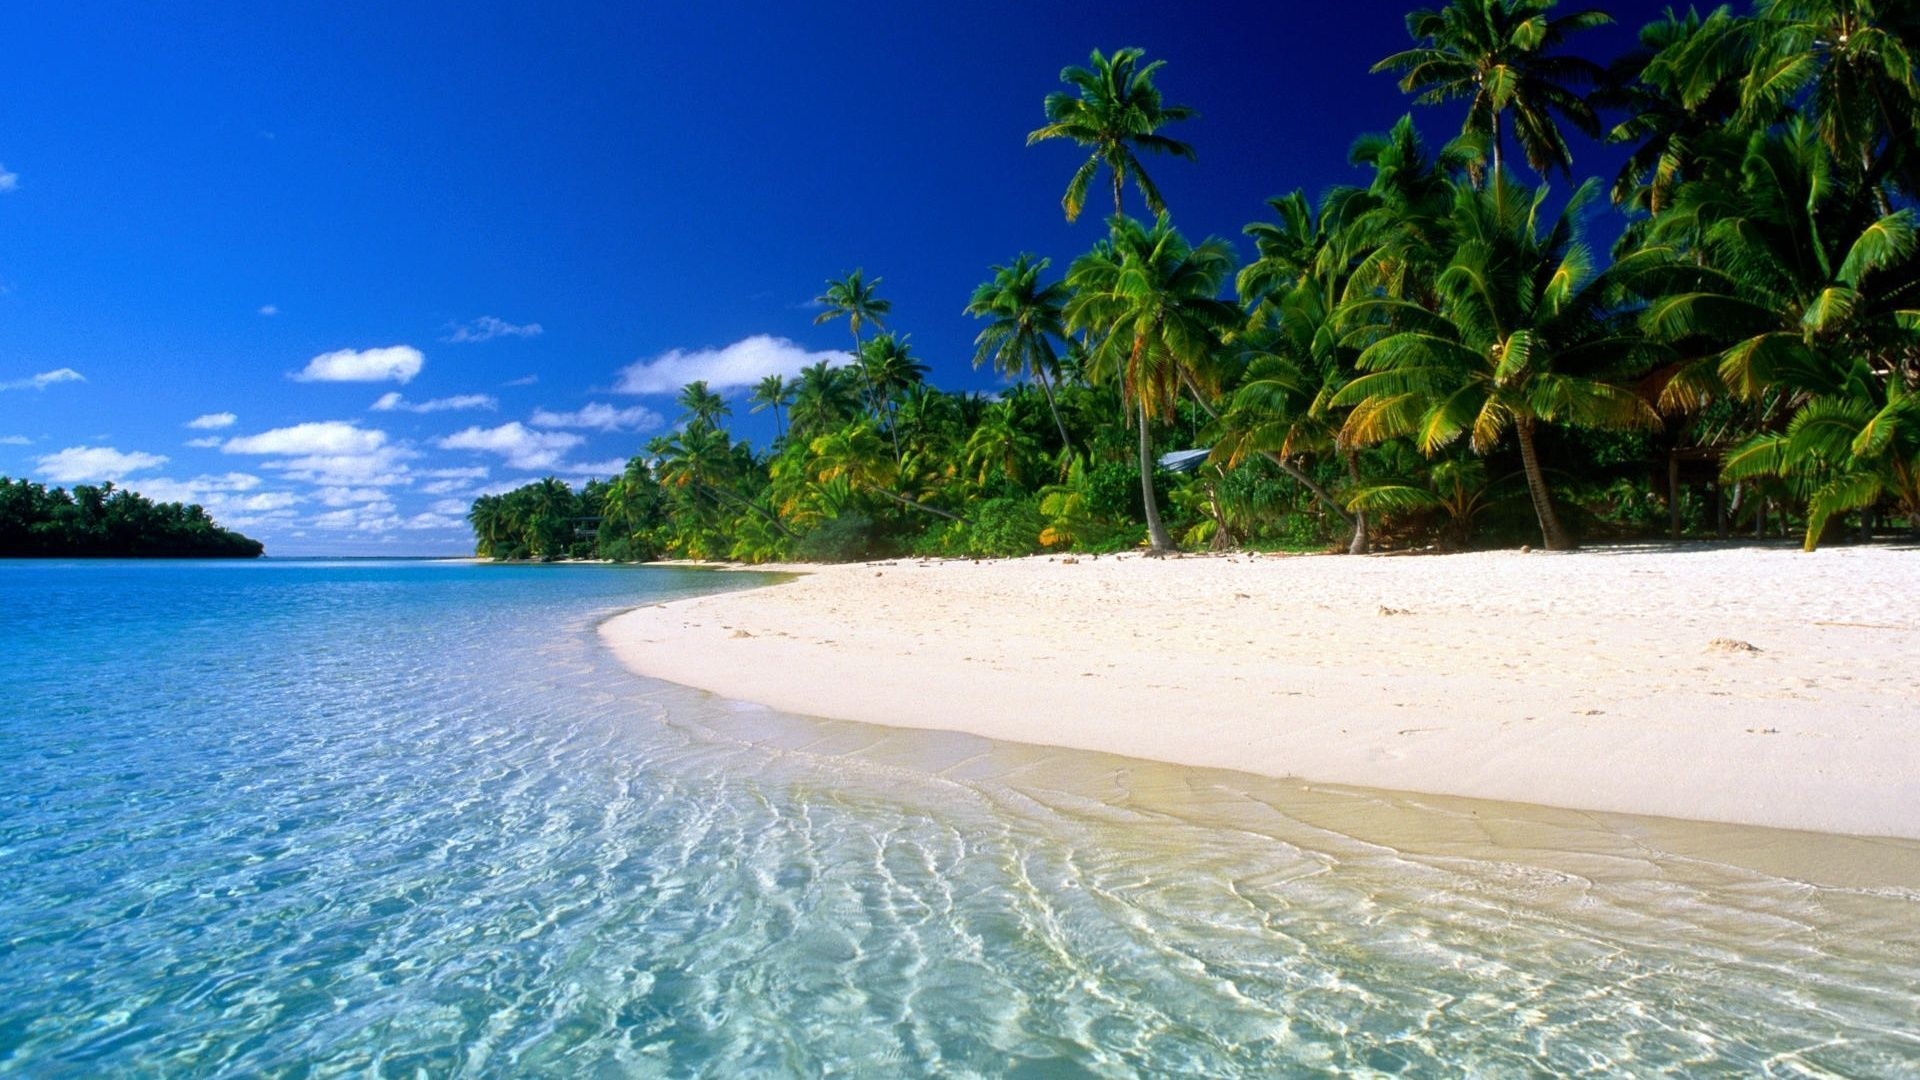 beautiful dream beach 1920x1080 Natural Beautiful Beach HD Wallpaper 1920x1080